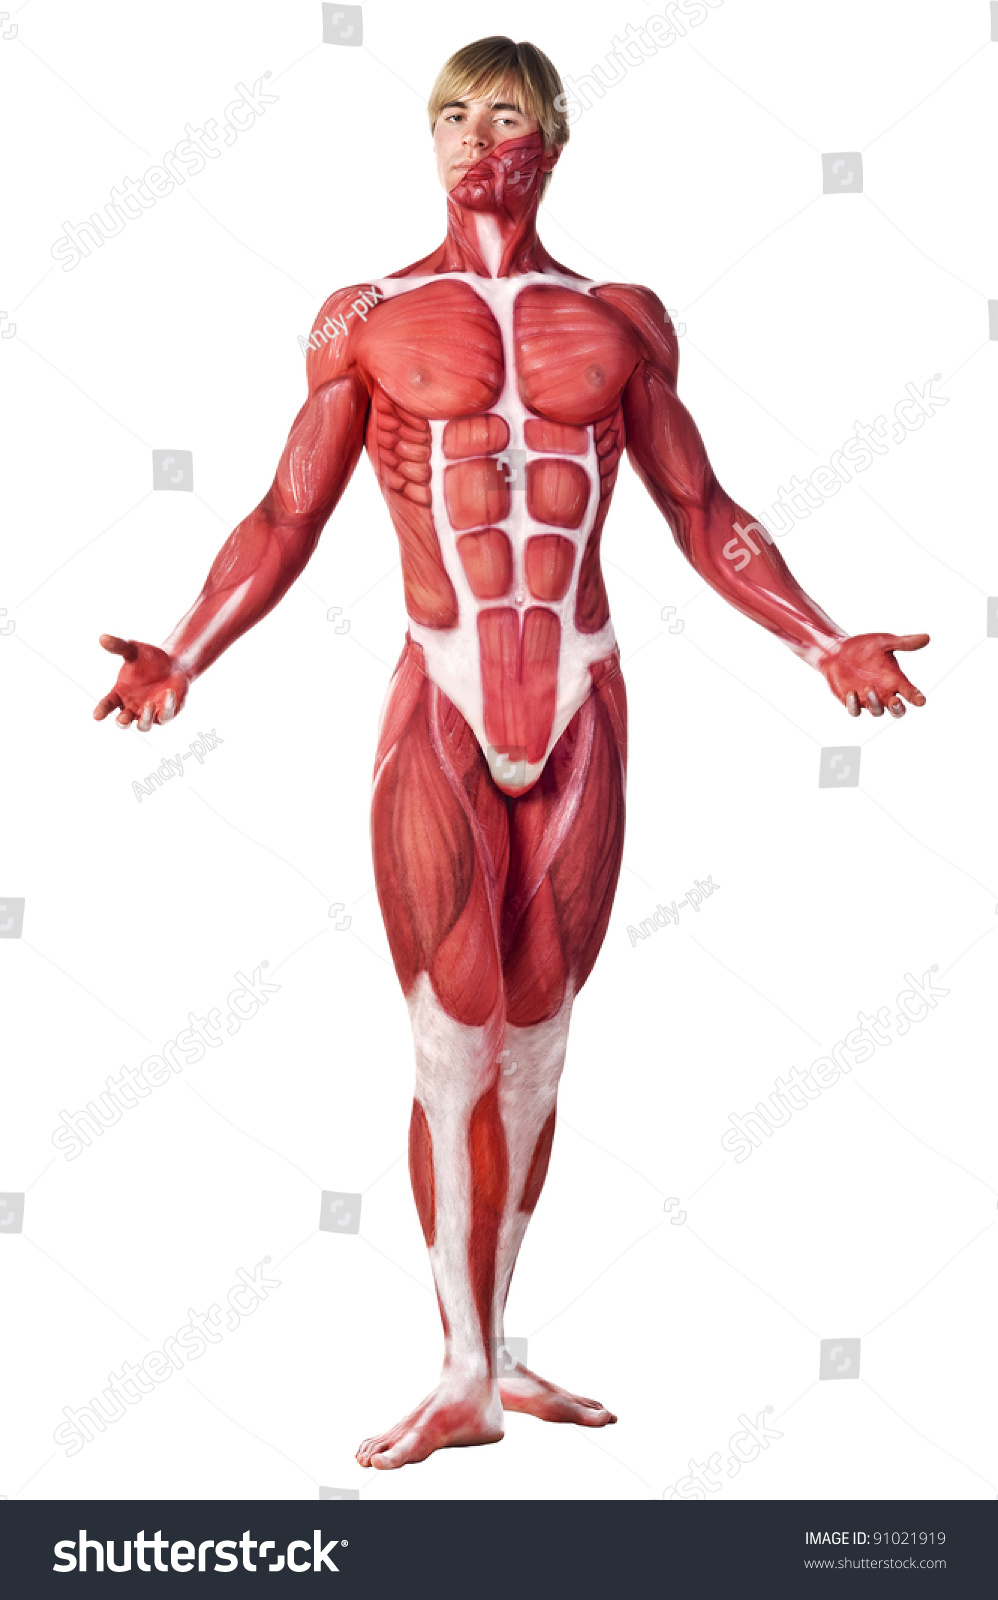 Muscle Man Front View Anatomy Body Art Isolated Over White Ez Canvas